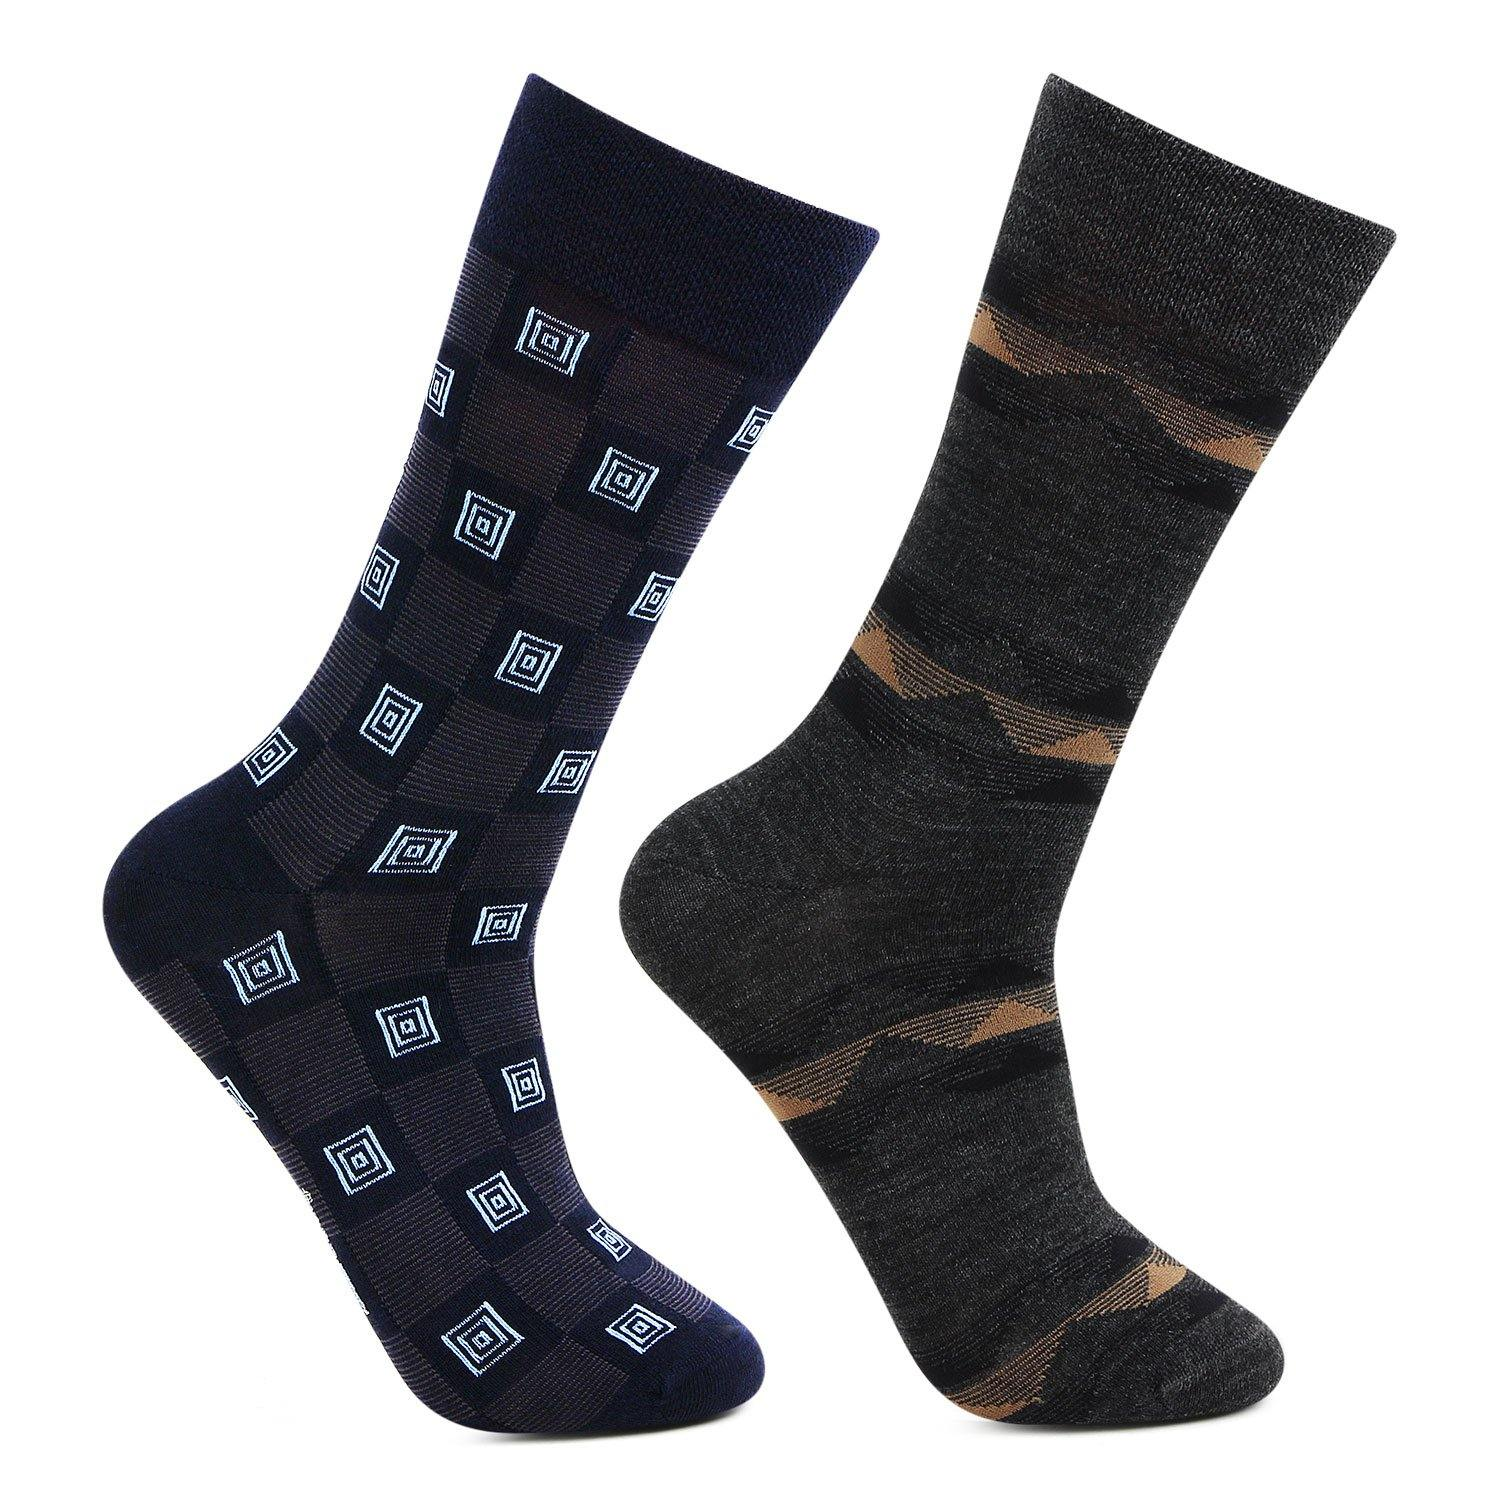 Woolen socks For men in Winter